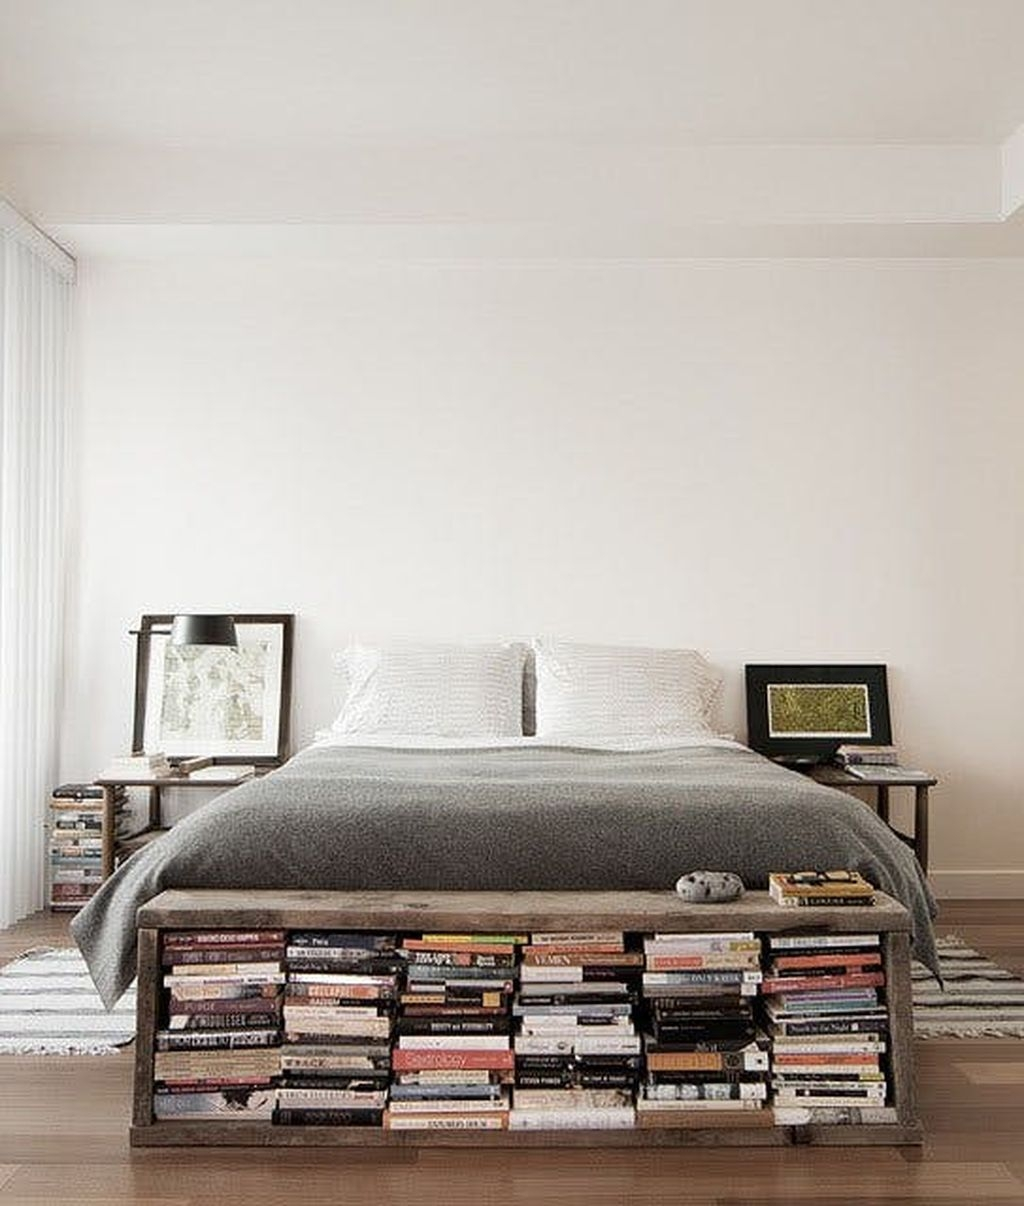 Totally Brilliant Bedroom Design Ideas For Small Apartment 54